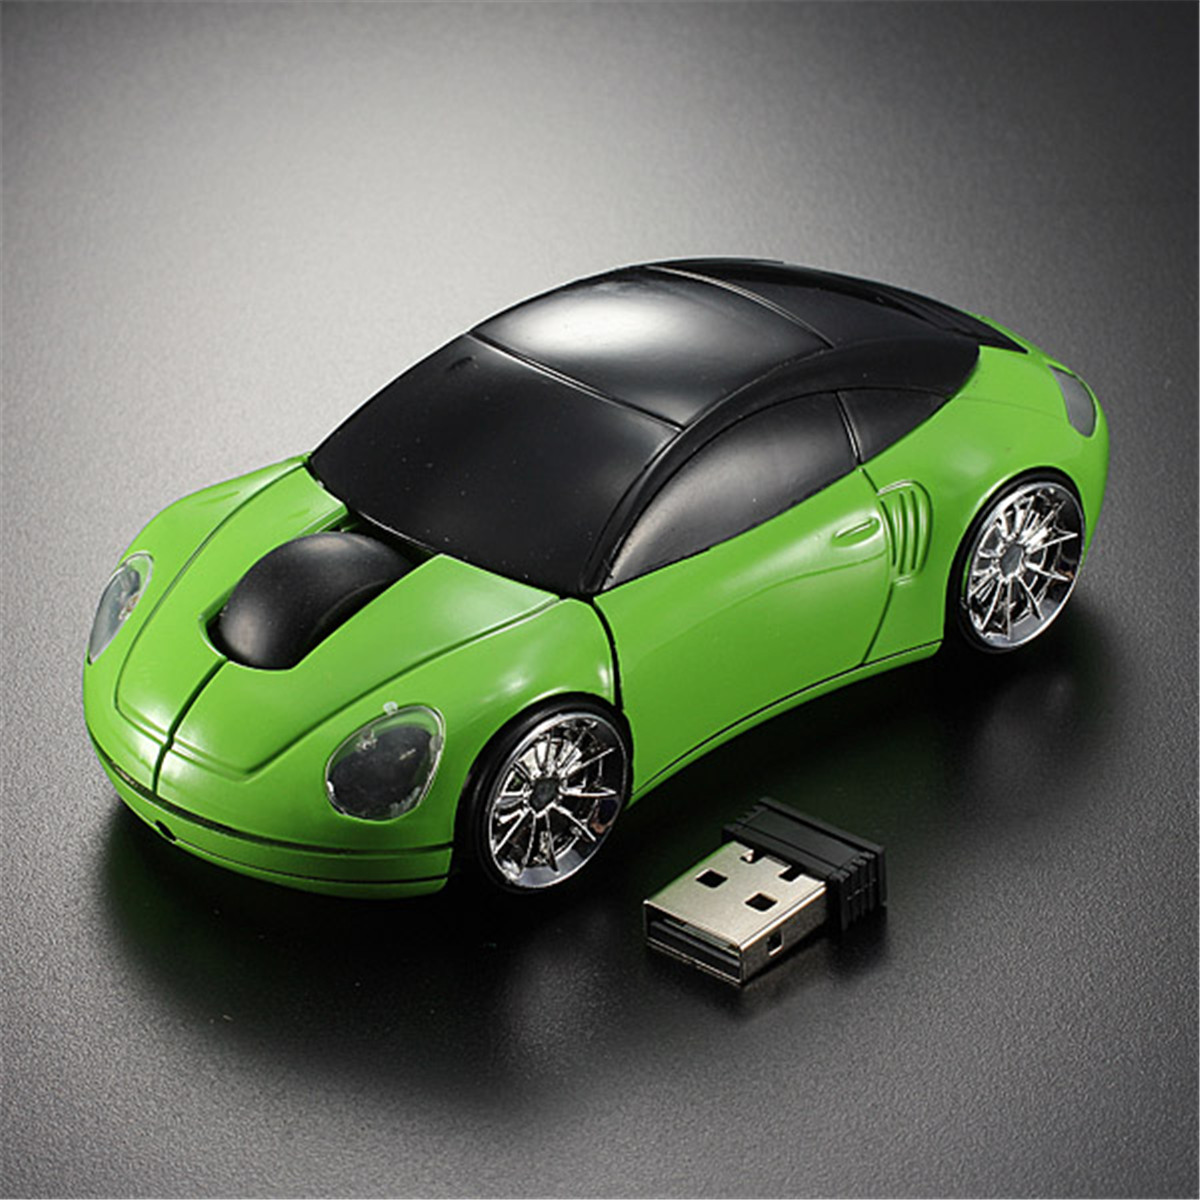 USB Wireless Optical Mouse 2.4GHz 1600DPI 3D Car Shape Mice for Laptop PC